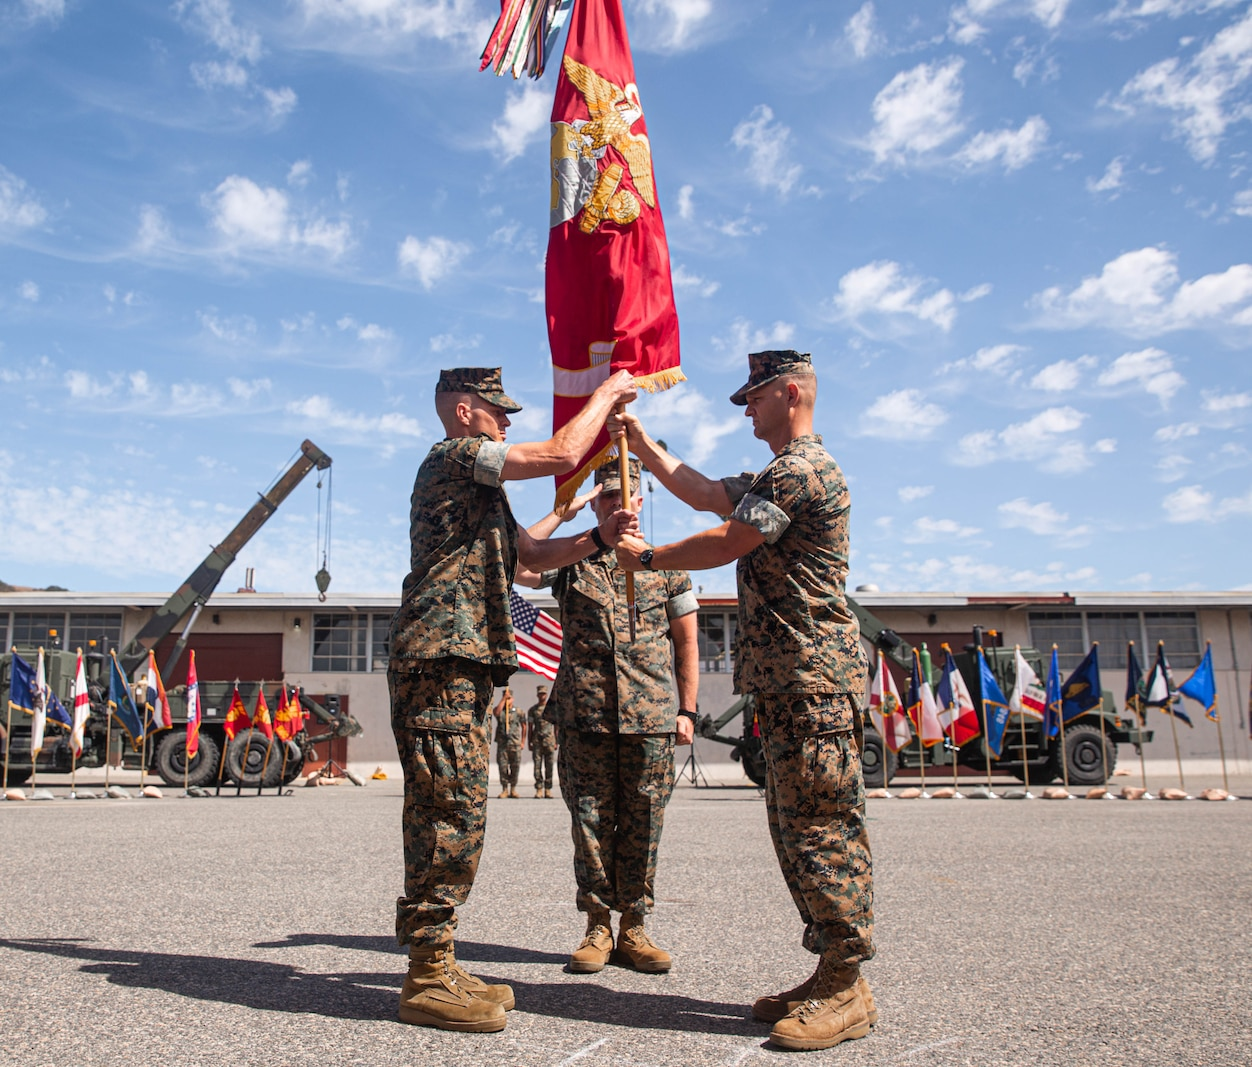 U.S. Marine Corps Lt. Col. Matt Hager, outgoing commanding officer, right, 1st Maintenance Battalion, and incoming commanding officer Lt. Col. Joseph R. Petkus, left, exchange the Battalion colors during the 1st Maint Bn change of command ceremony.